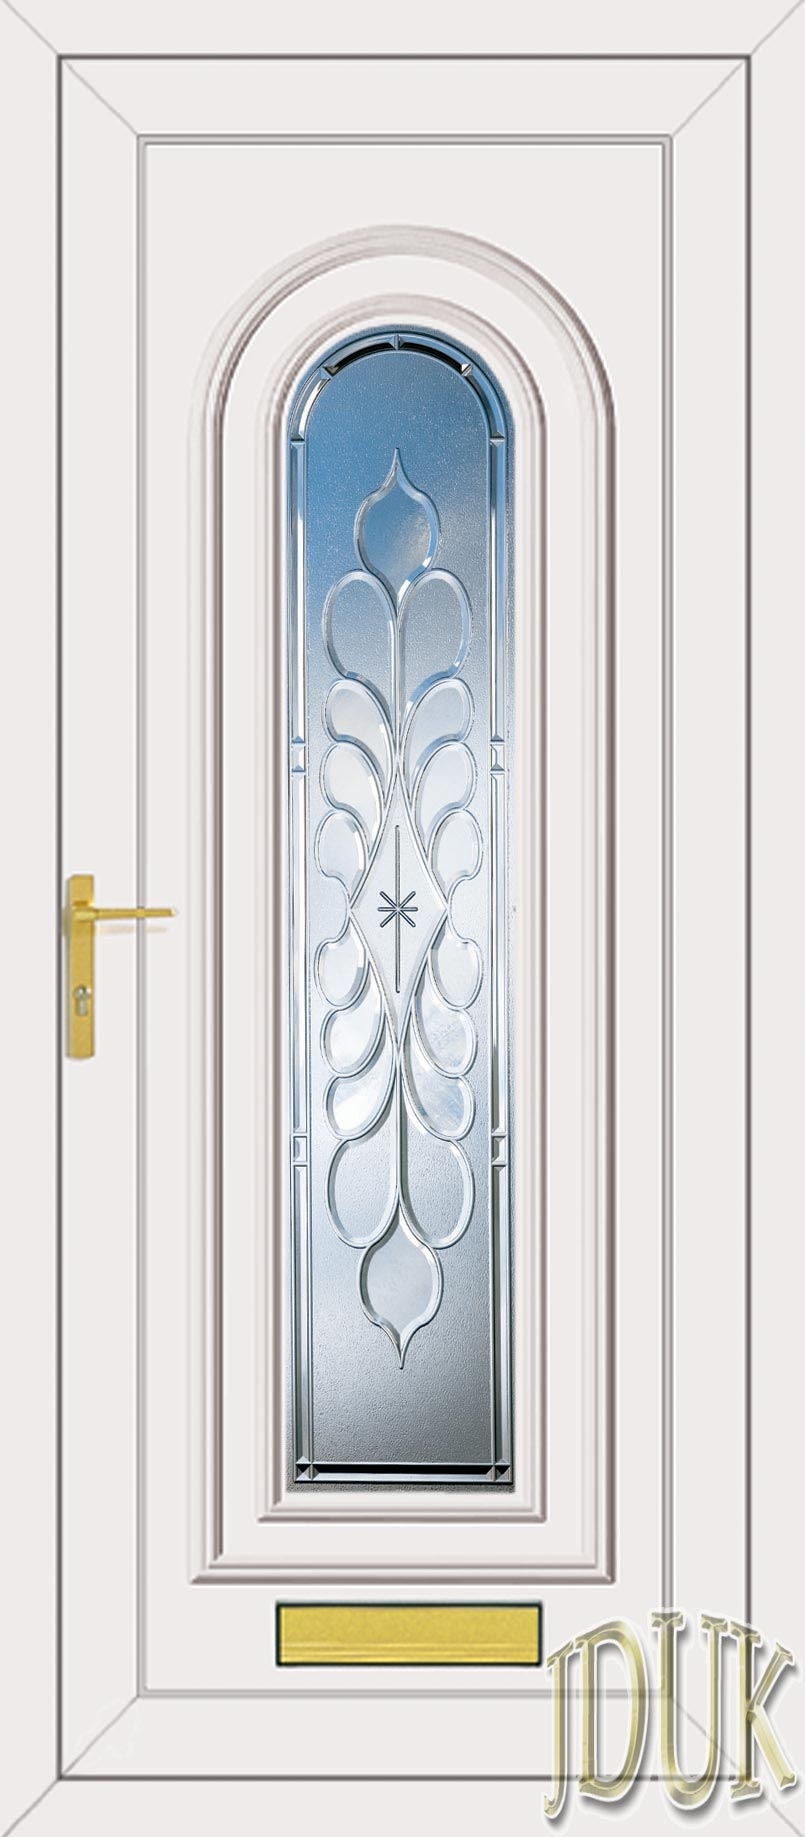 Washington one legend clear bevel upvc front door for Upvc front doors